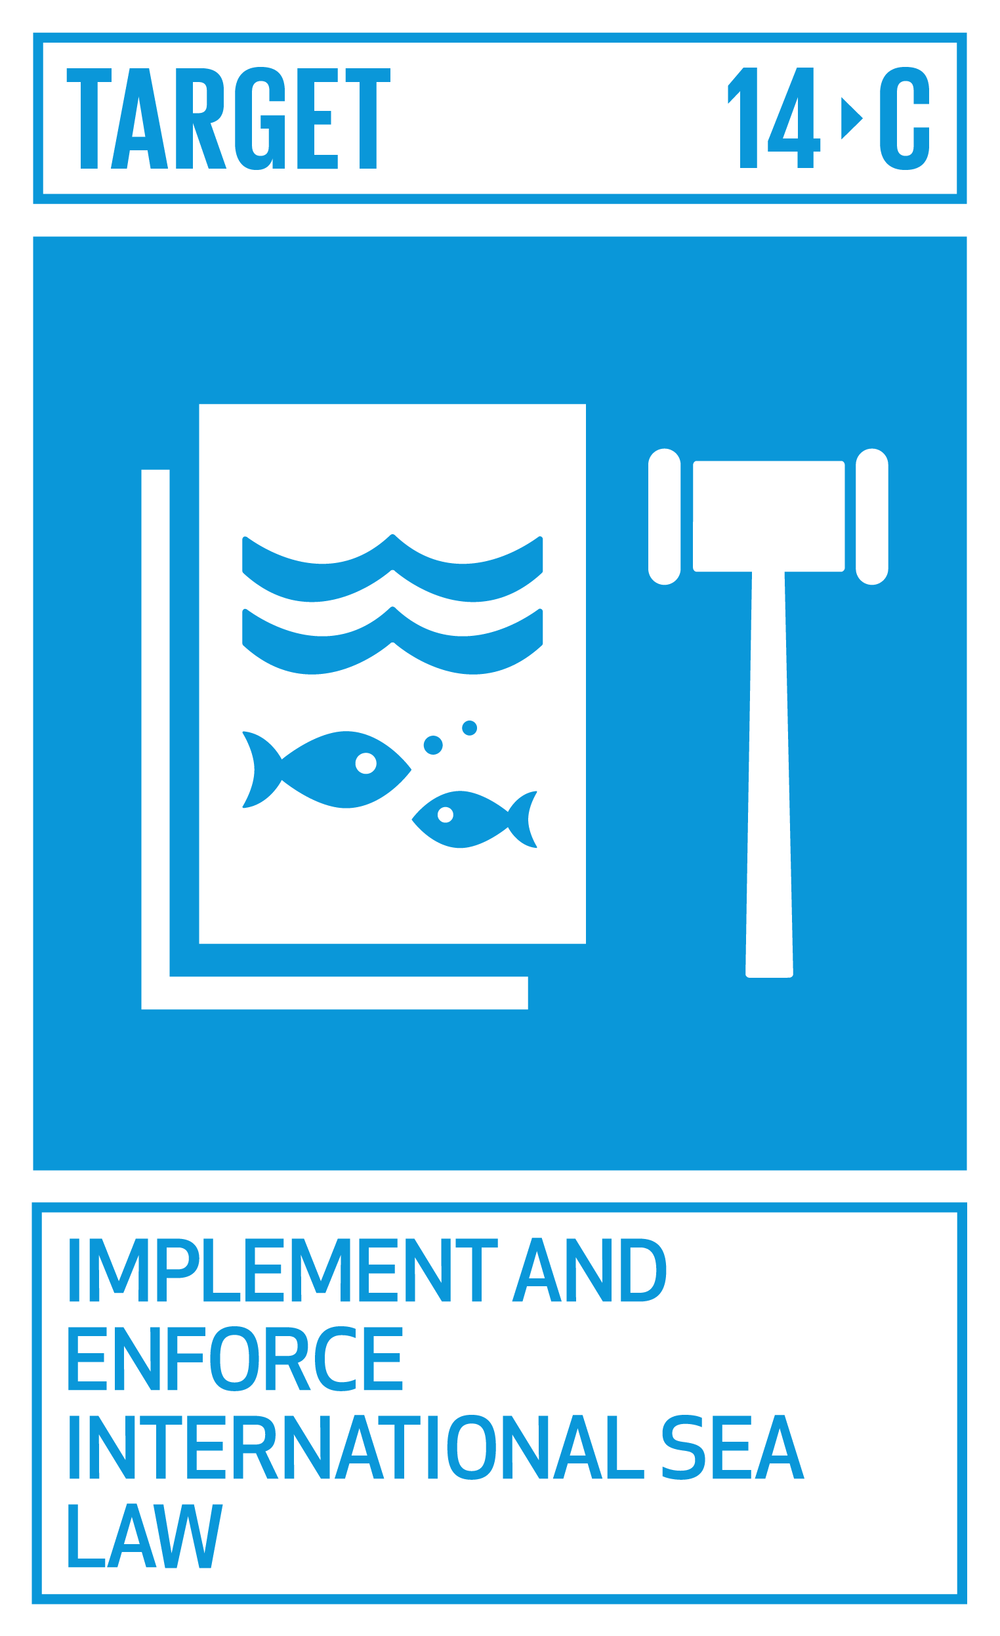 """Enhance the conservation and sustainable use of oceans and their resources by implementing international law as reflected in the United Nations Convention on the Law of the Sea, which provides the legal framework for the conservation and sustainable use of oceans and their resources, as recalled in paragraph 158 of """"The future we want"""".   INDICATOR    14.c.1  Number of countries making progress in ratifying, accepting and implementing through legal, policy and institutional frameworks, ocean-related instruments that implement international law, as reflected in the United Nations Convention on the Law of the Sea, for the conservation and sustainable use of the oceans and their resources"""